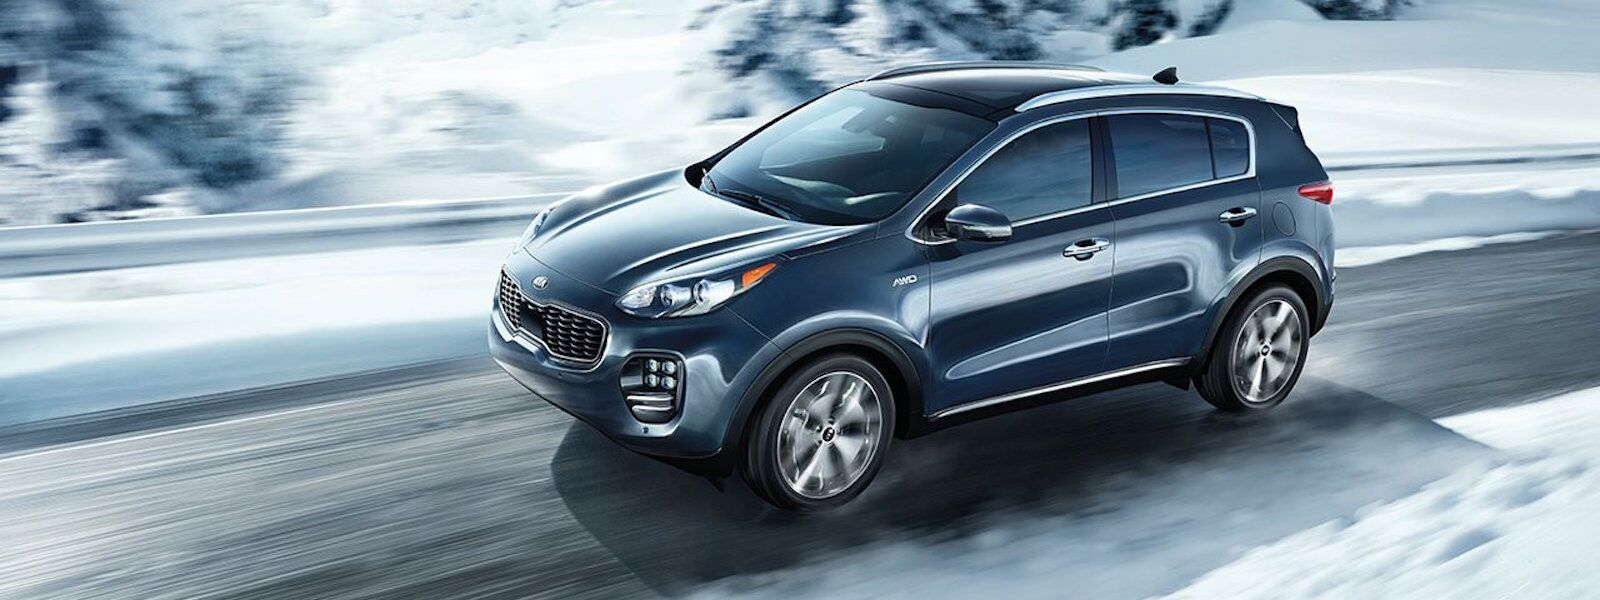 2017 Kia Sportage Performance